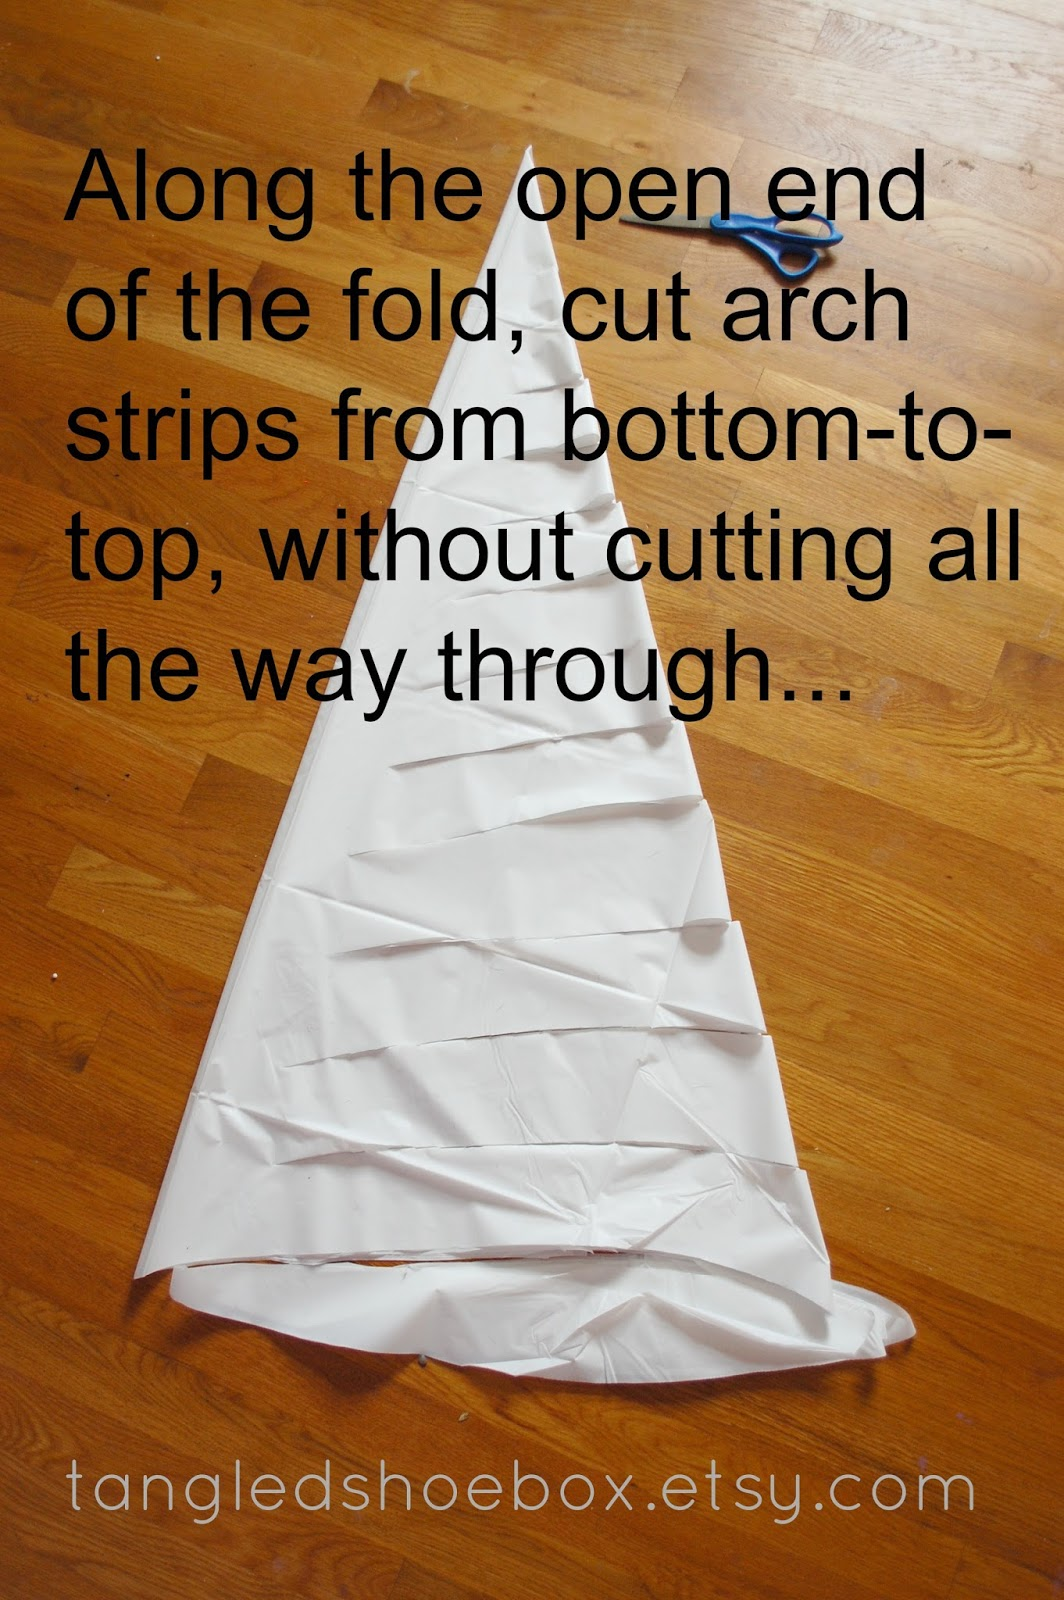 **If You Want To Make A Smaller Spider Web/s, You Can Cut The Bottom Arch  Closer To The Point Of The Fold...like Maybe Half Way Up Or So Verses The  Very ...